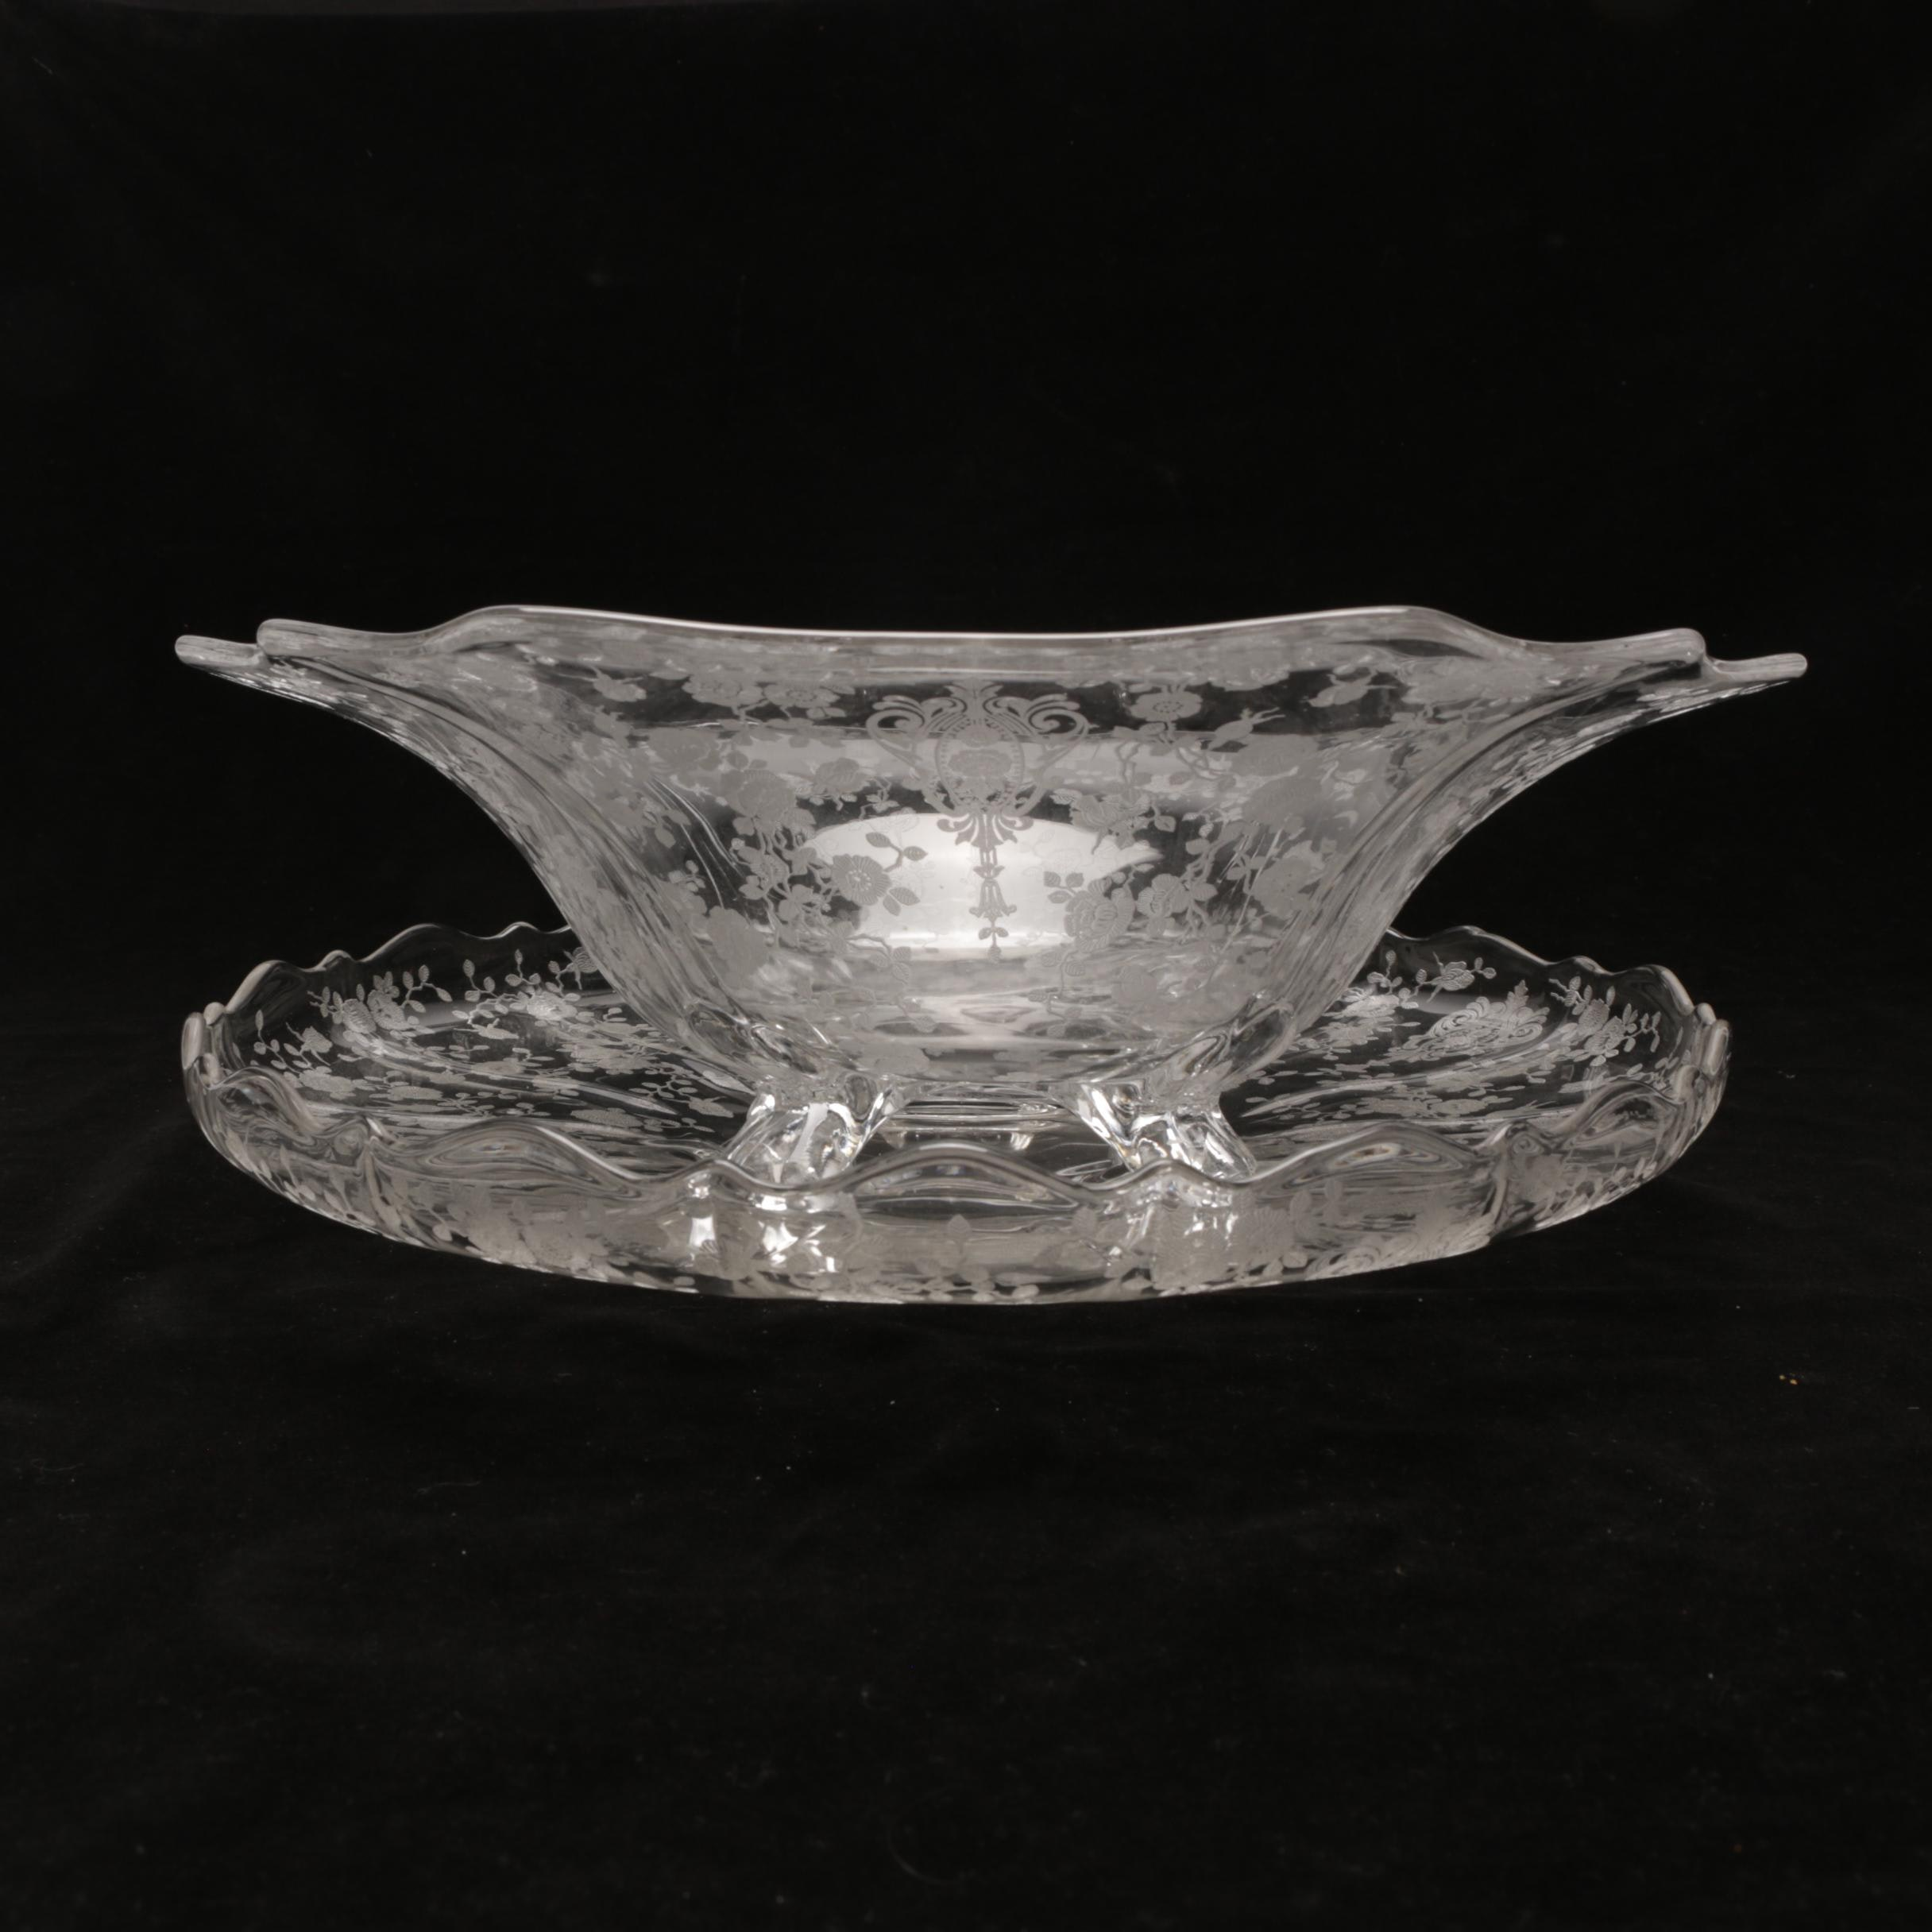 Rose Print Glass Centerpiece Bowl with Tray, Attributed to Cambridge